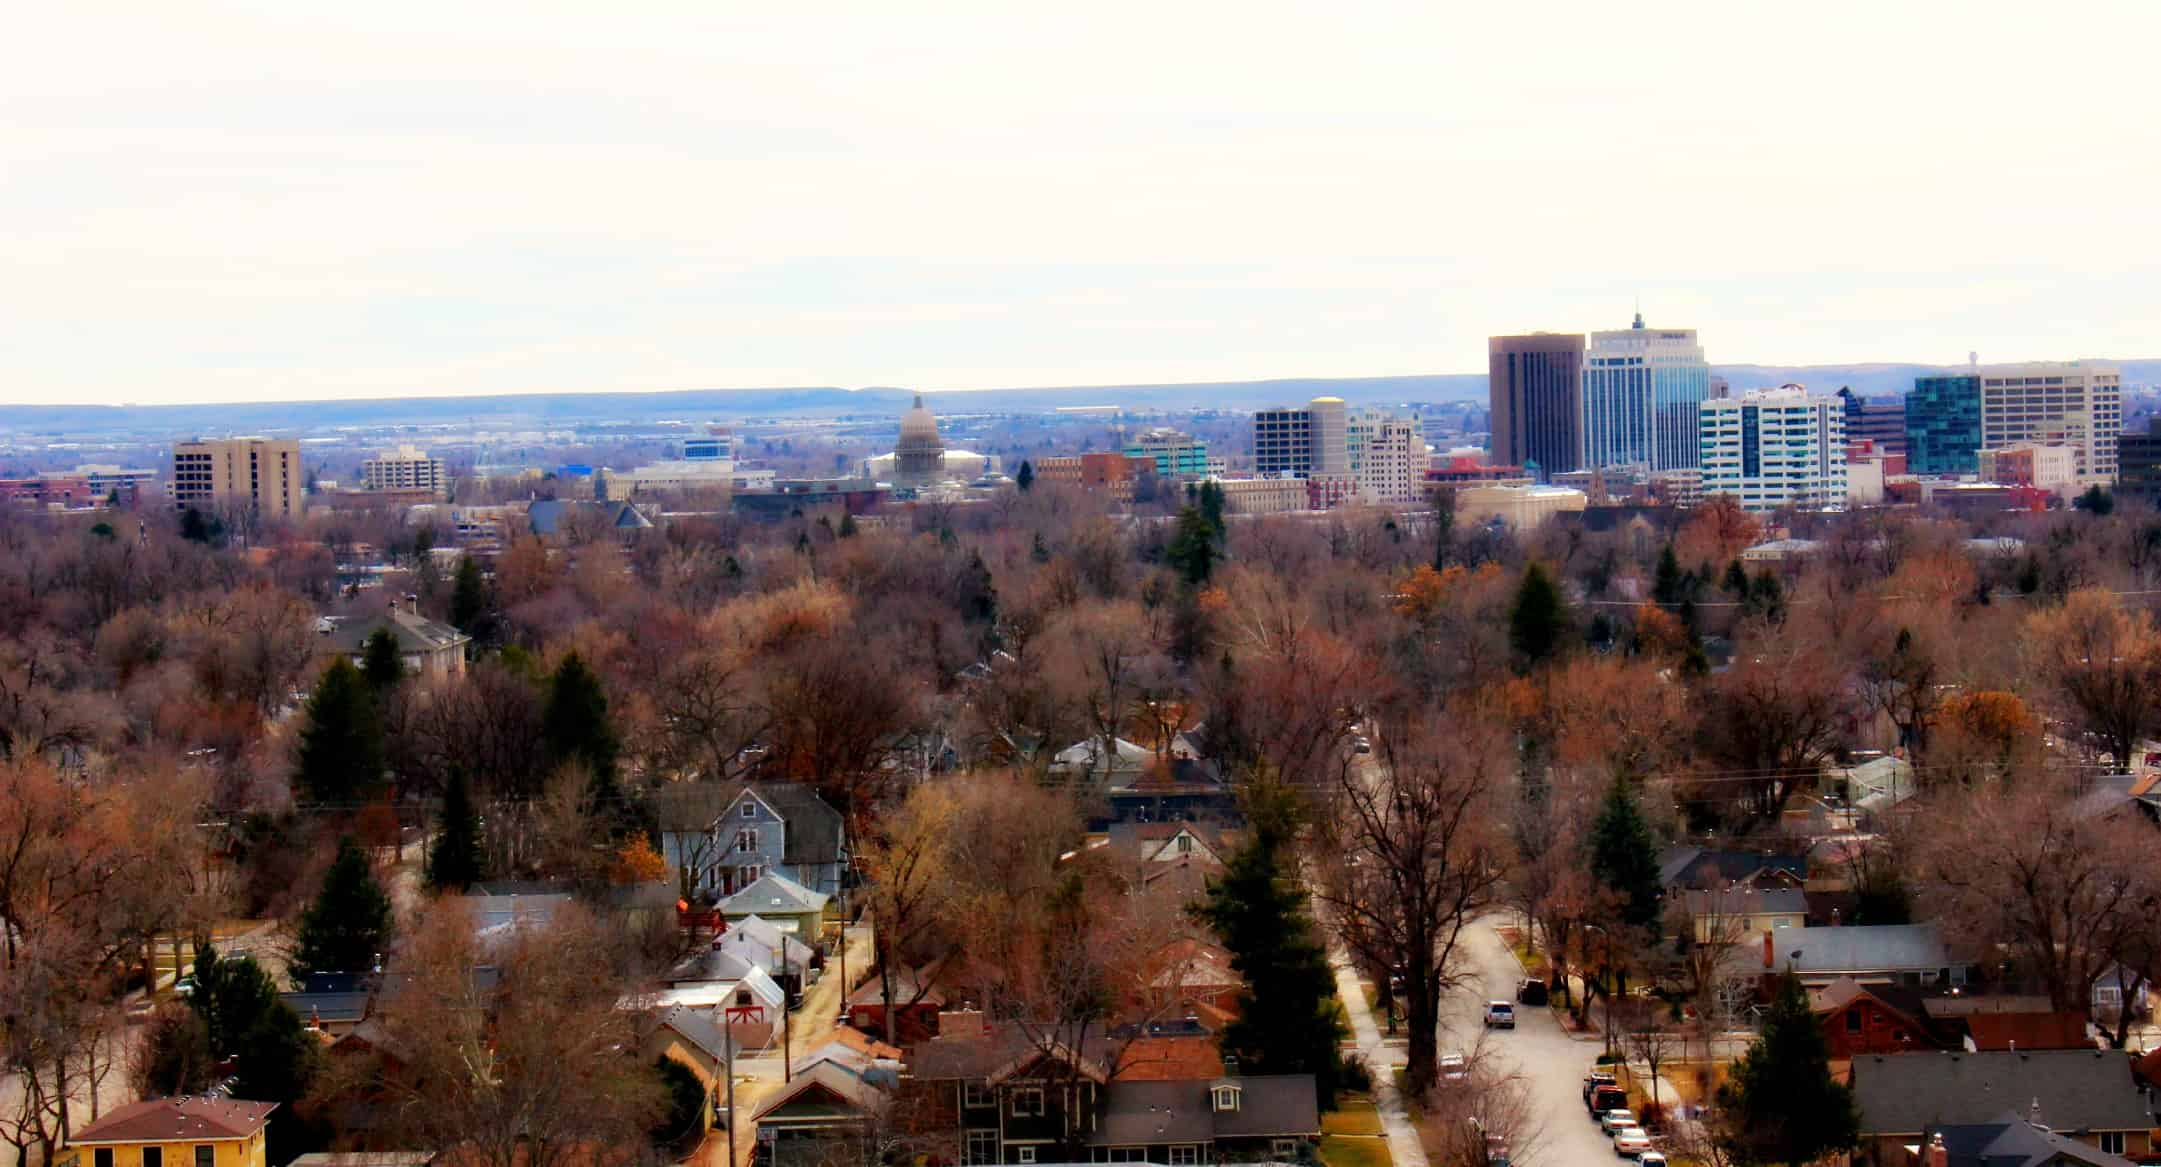 BOISE OFFERS SOMETHING FOR EVERYONE by Paula Wheeler